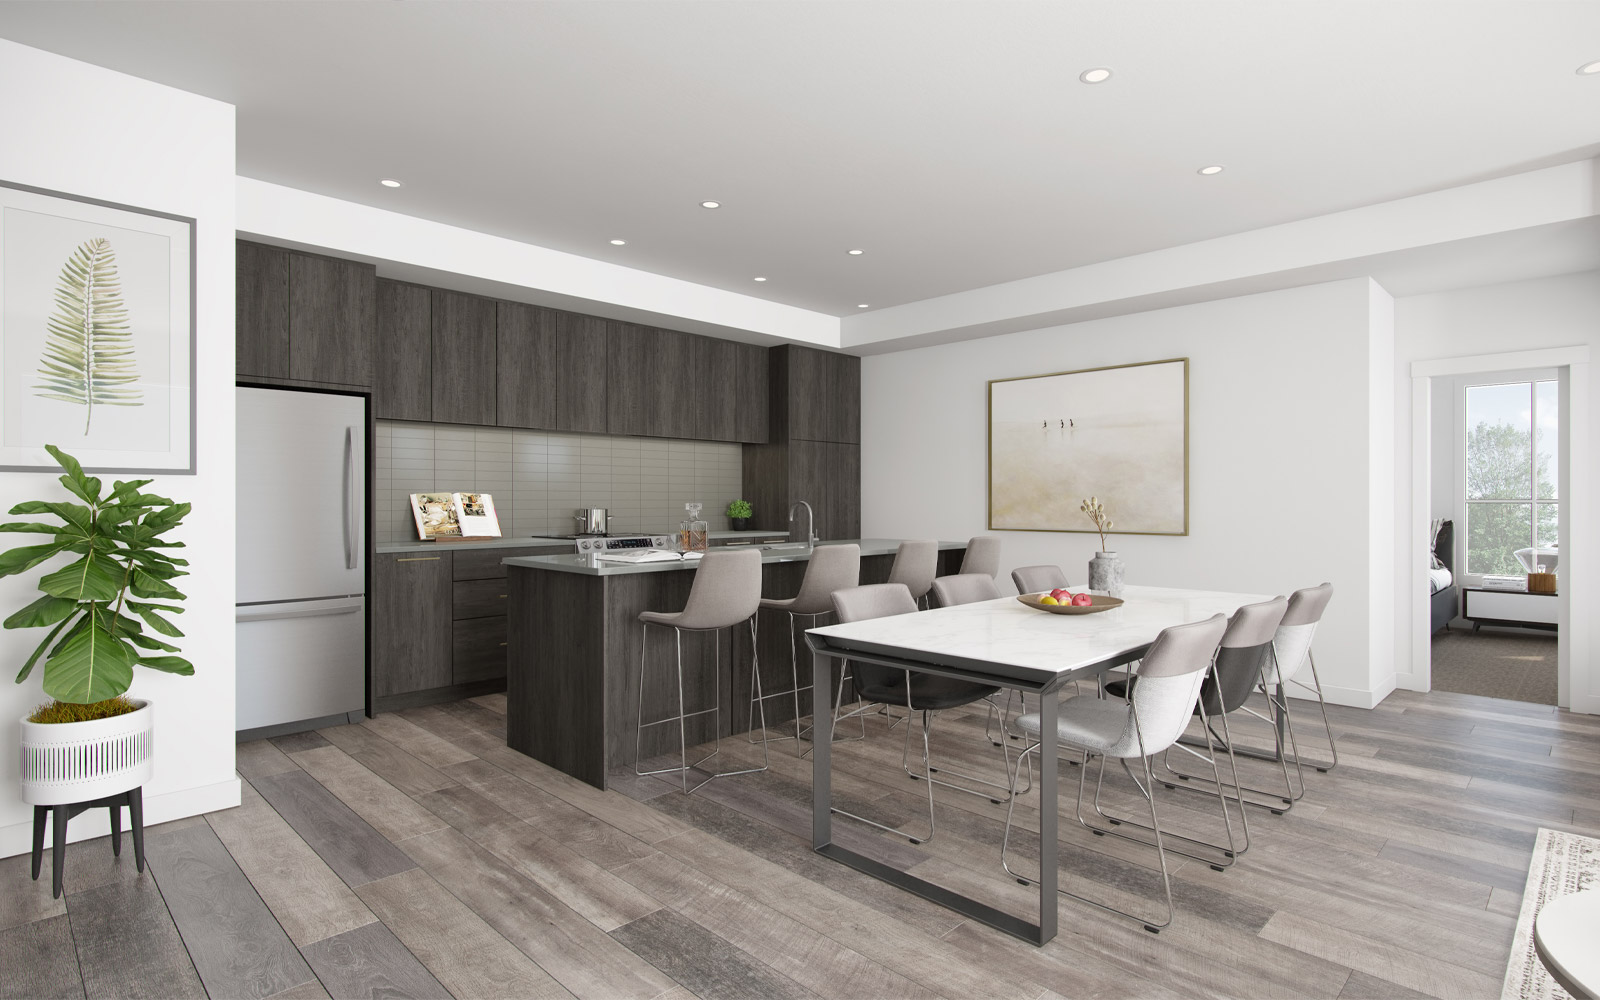 del-kitchen-and-dining-capella-university-district-calgary